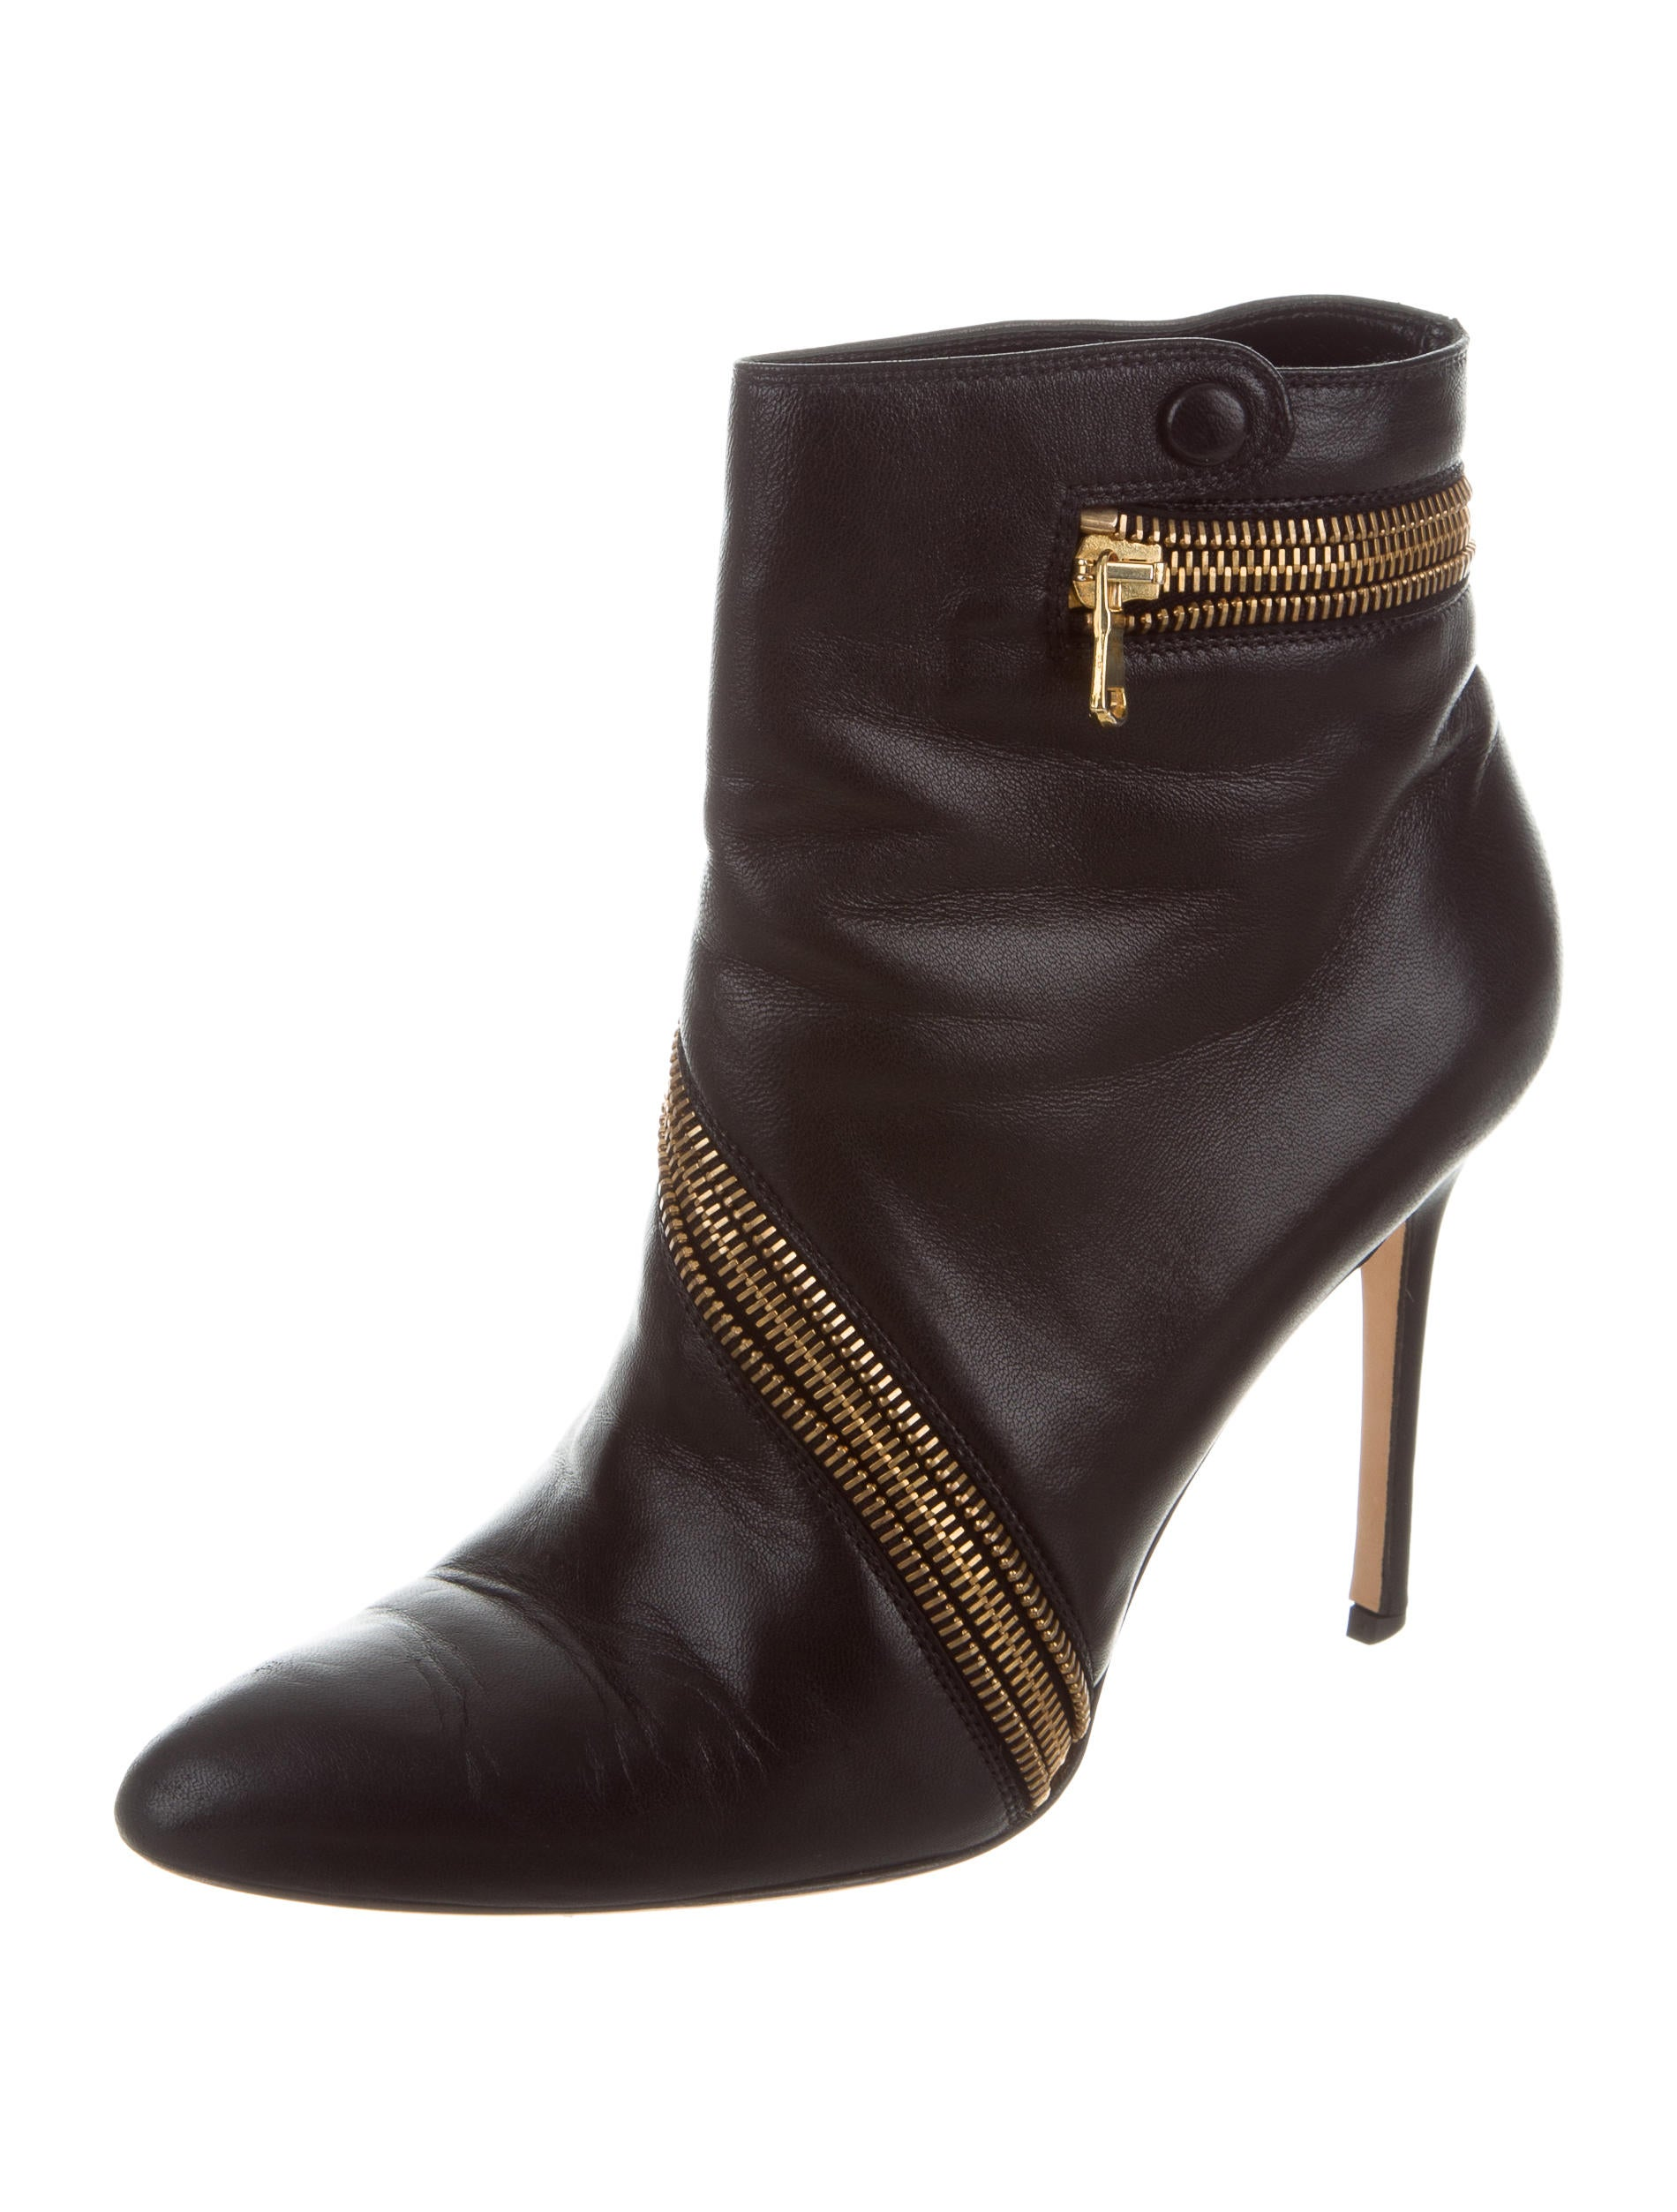 brian atwood leather pointed toe ankle boots shoes